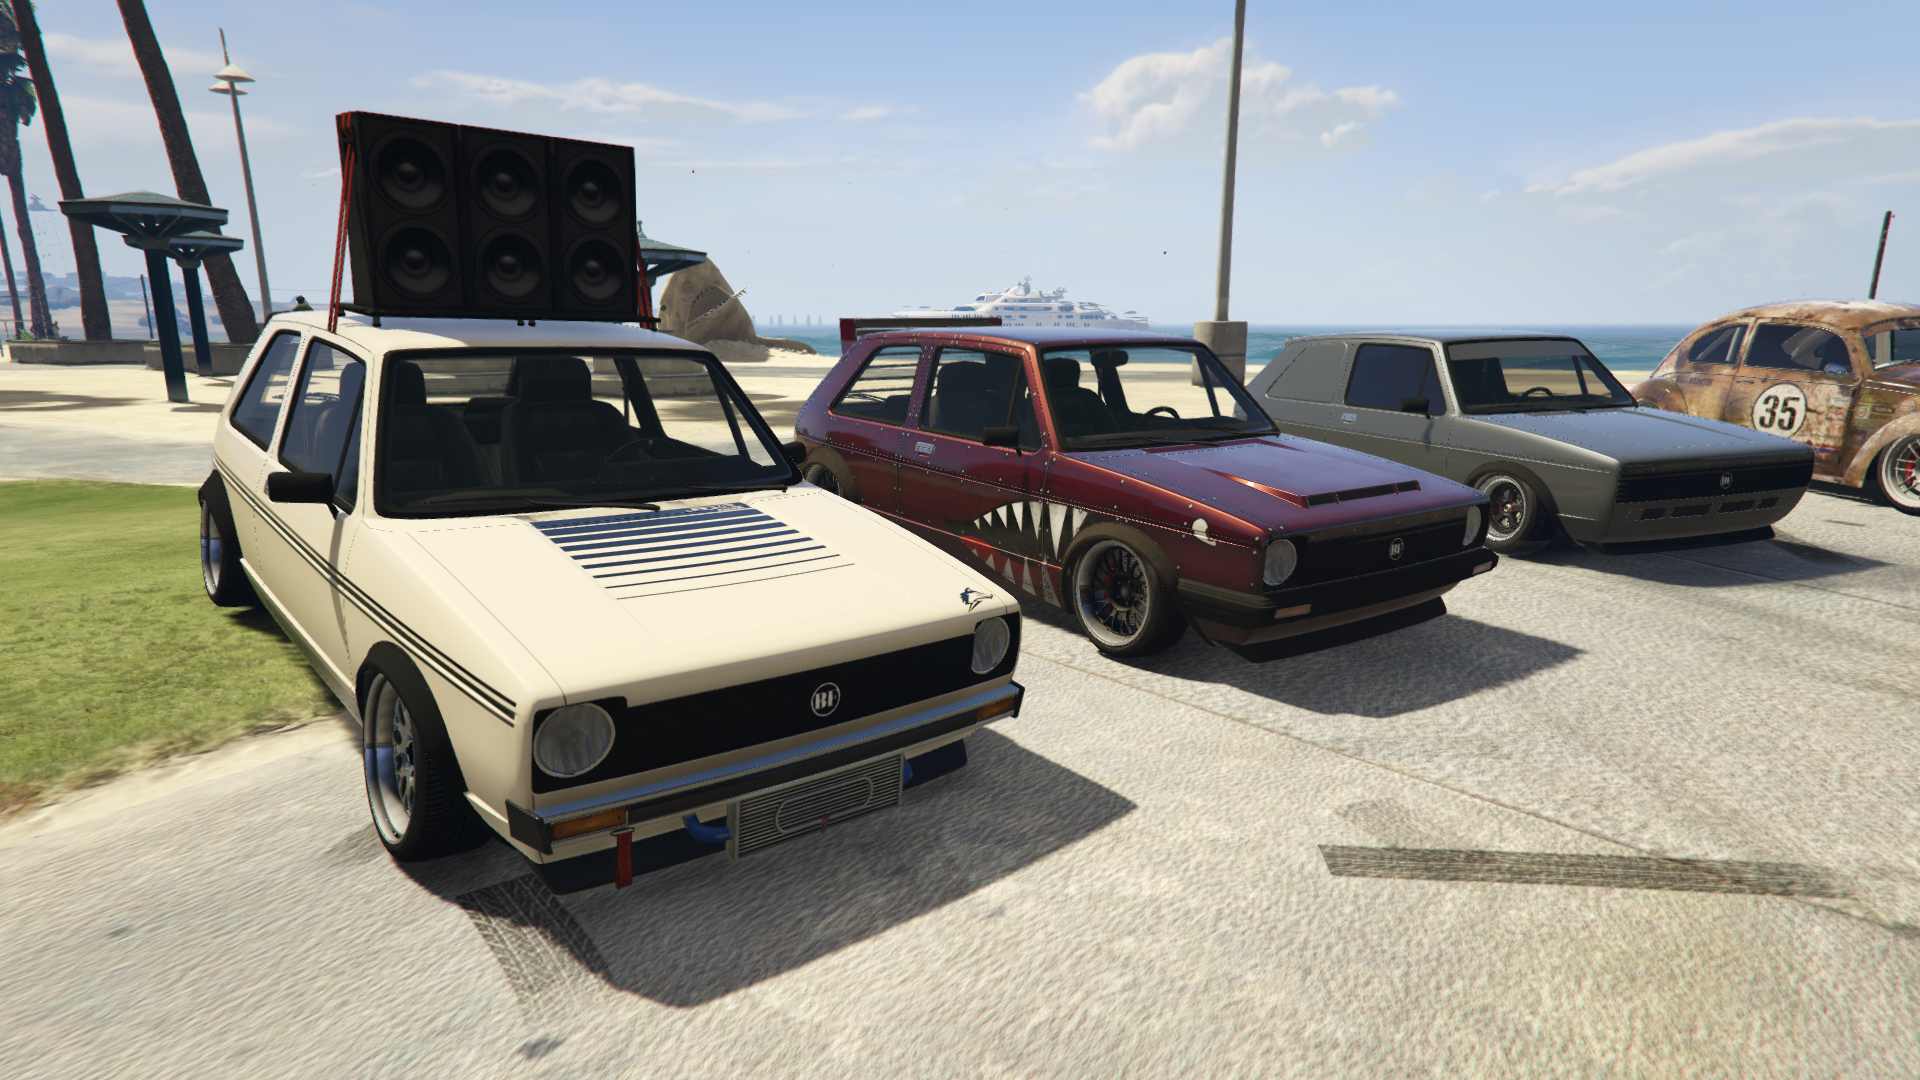 Grand_Theft_Auto_V_Screenshot_2021.01.13